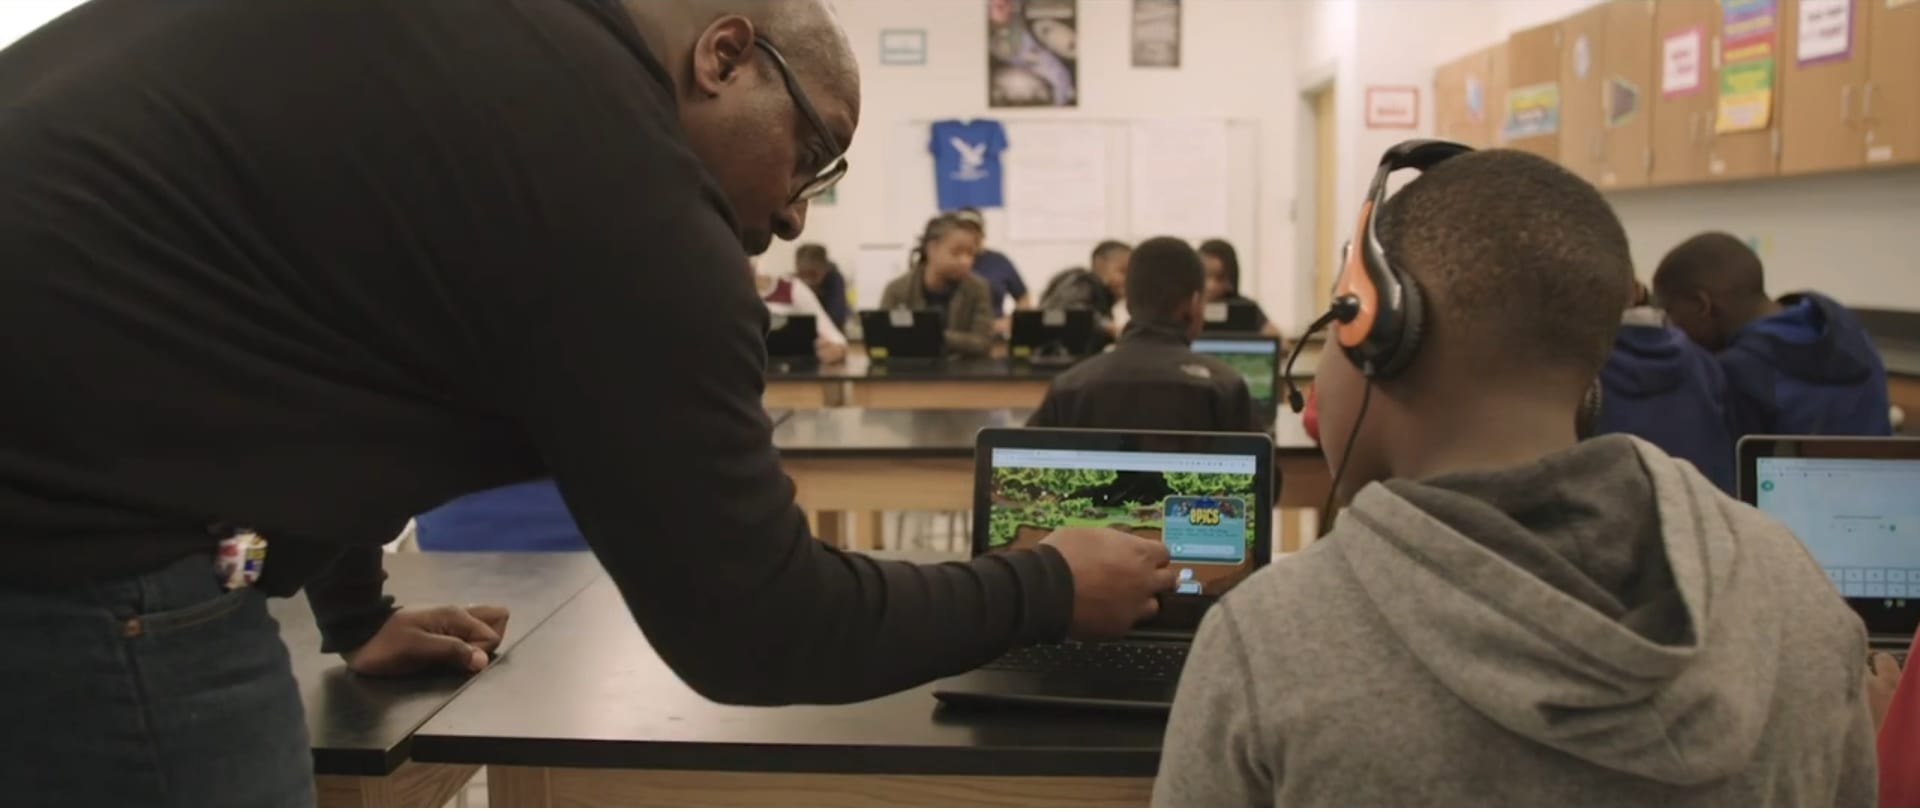 VR technology in classroom